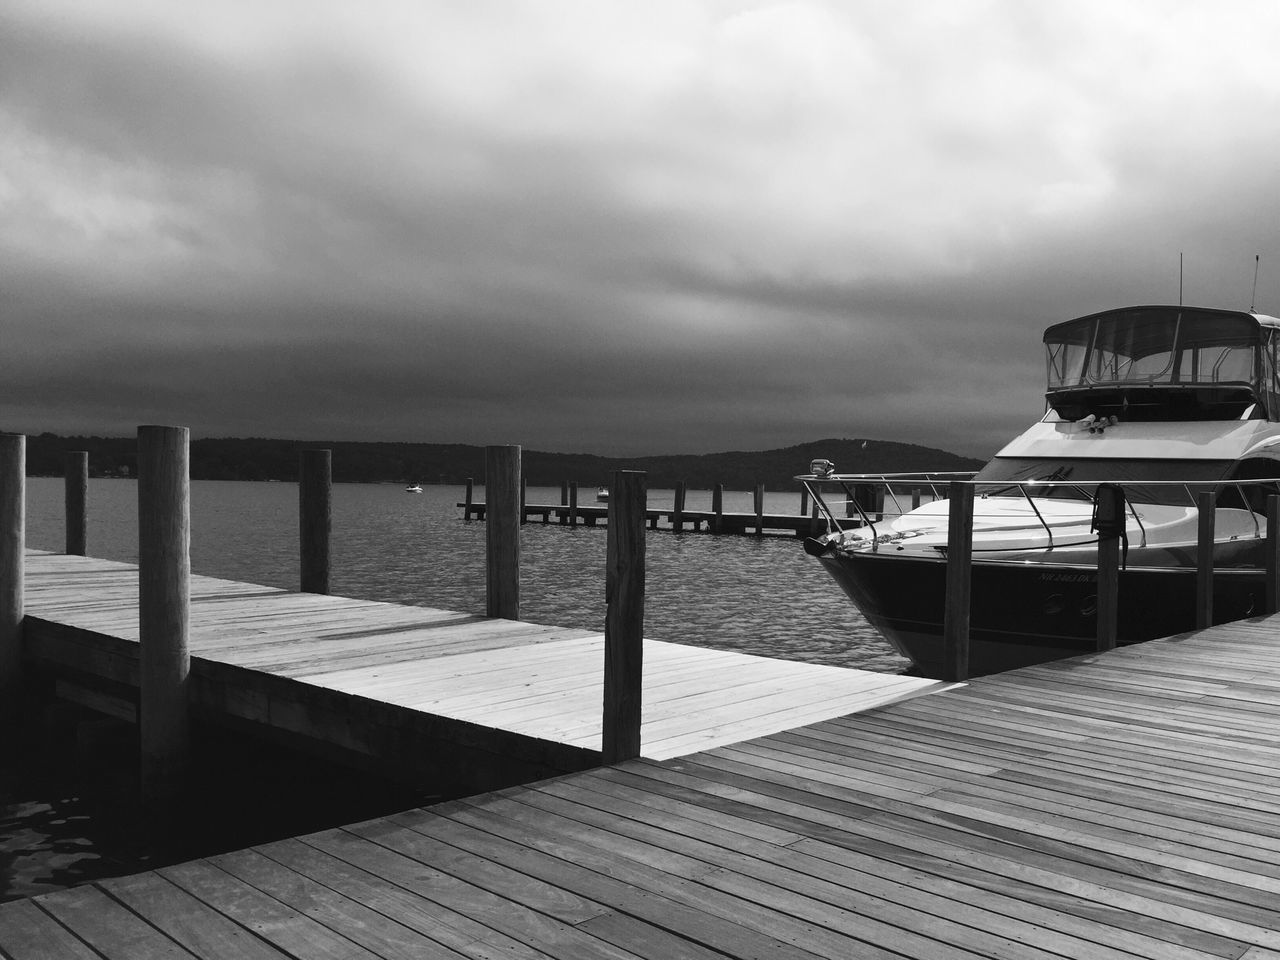 Wooden Jetty At Calm Sea Against Cloudy Sky